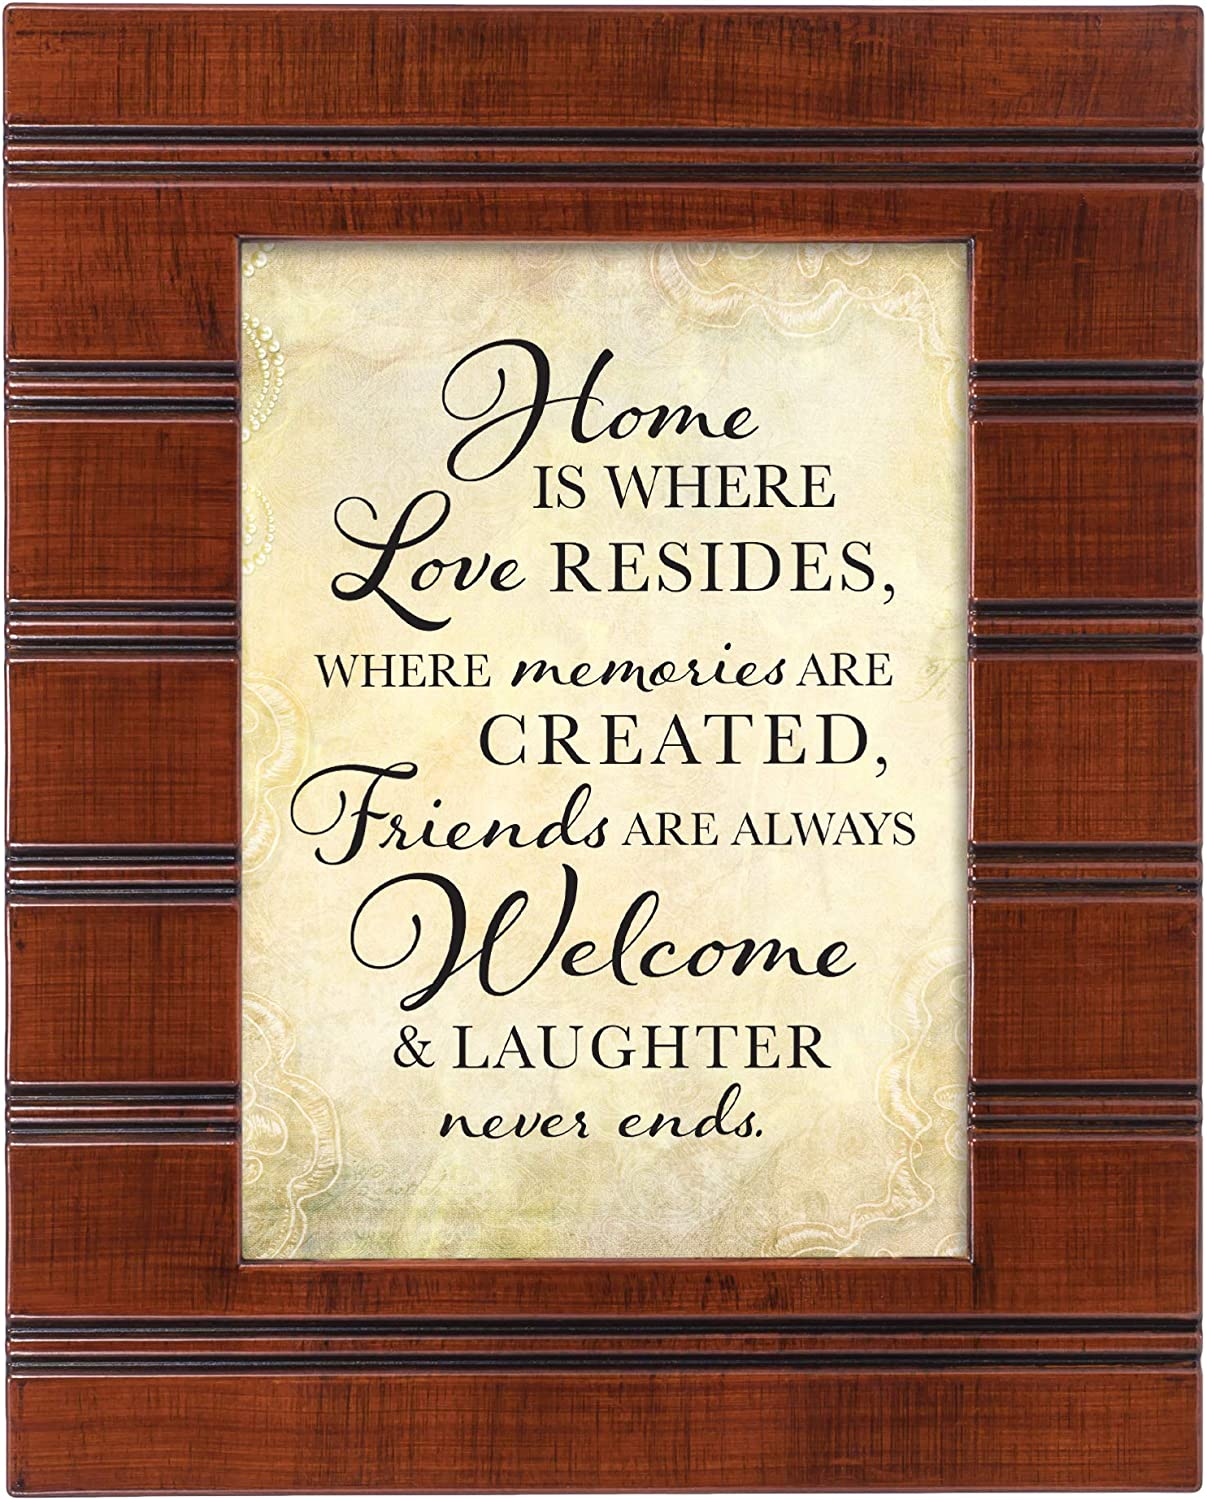 Cottage Garden Home is Where Love Resides Woodgrain Beaded Board 5 x 7 Table Top and Wall Photo Frame